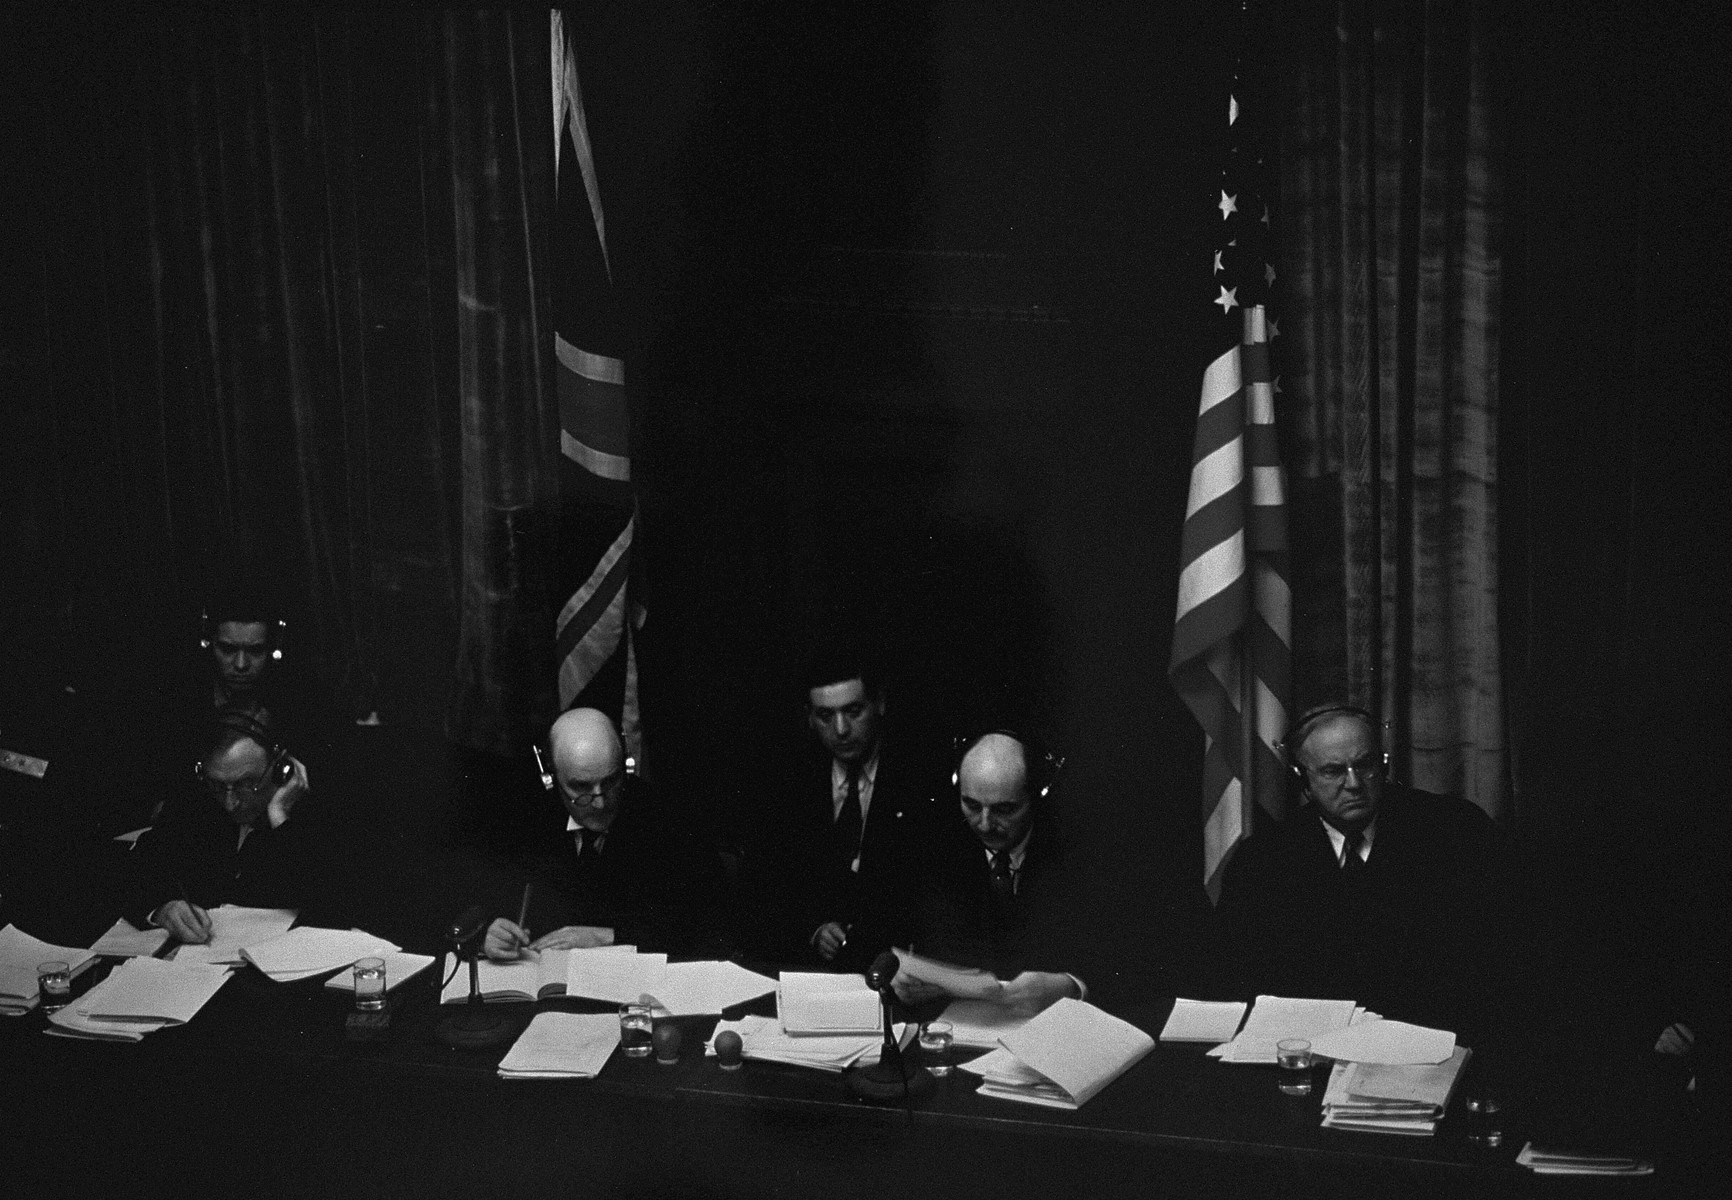 The British and American judges on the International Military Tribunal listen to testimony through their headphones at the trial of war criminals at Nuremberg.    Pictured from left to right are: Justice Norman Birkett, Lord Justice Geoffrey Lawrence, Francis Biddle, and John J. Parker.